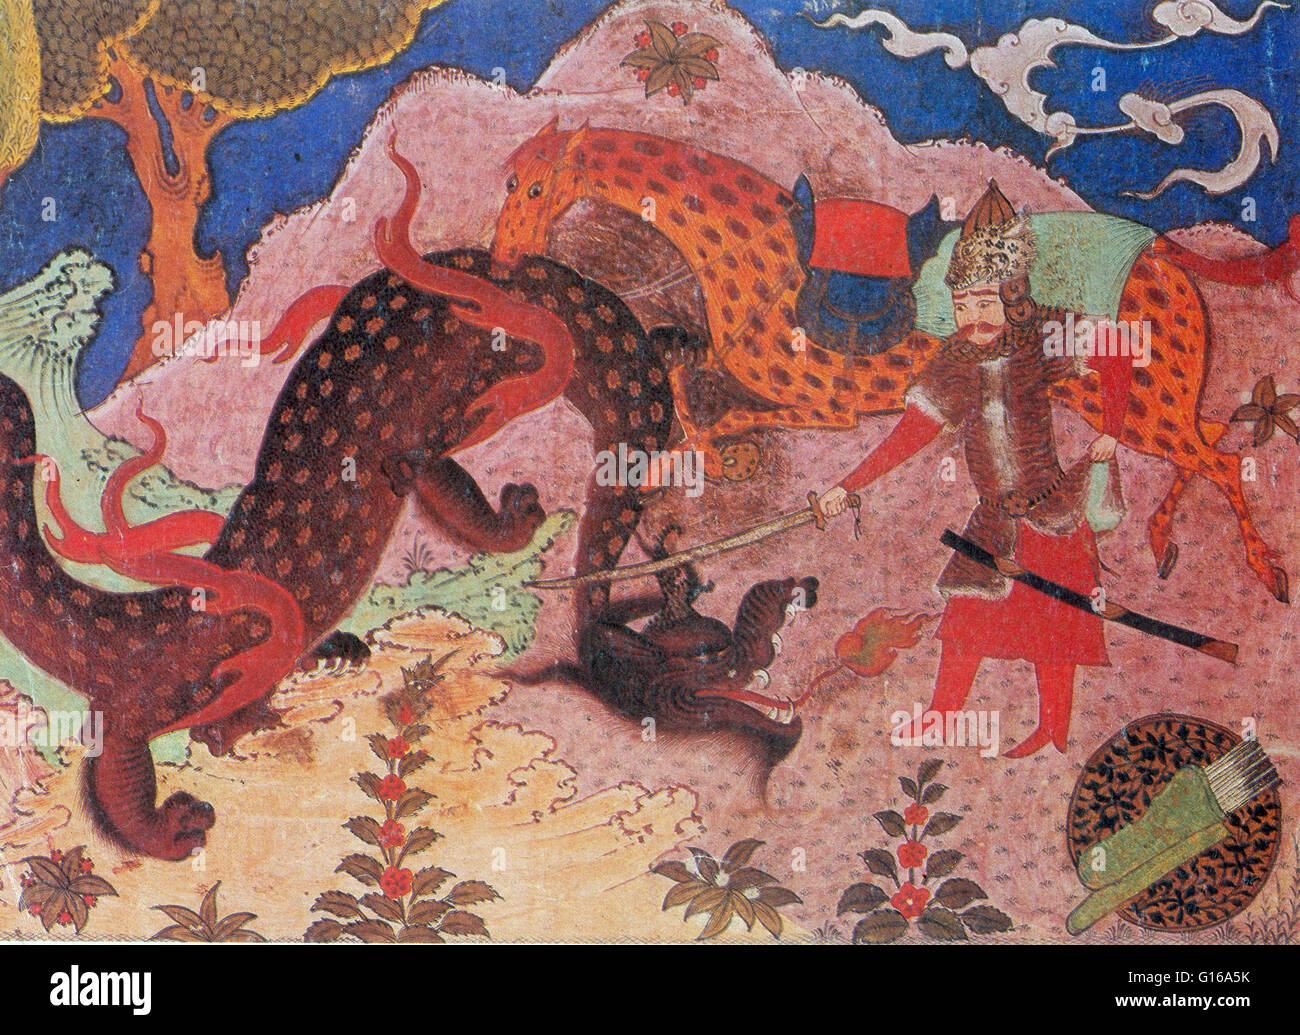 Rostam is the epic hero of the story, Rostam and Sohrab, part of the Persian epic of Shahnama in Persian mythology. Stock Photo